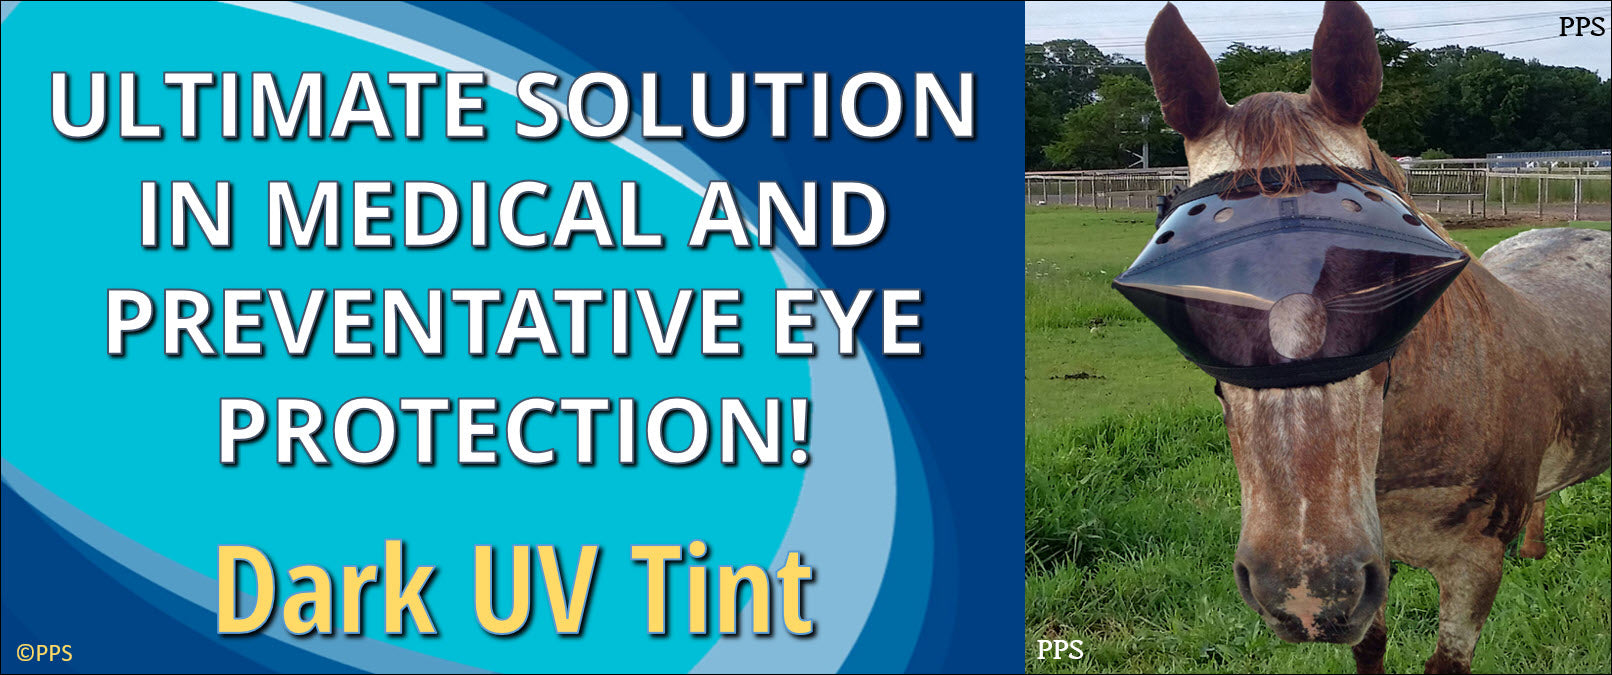 Recovery Vizor for Horses - Ultimate Solution for Eye and Face Protection